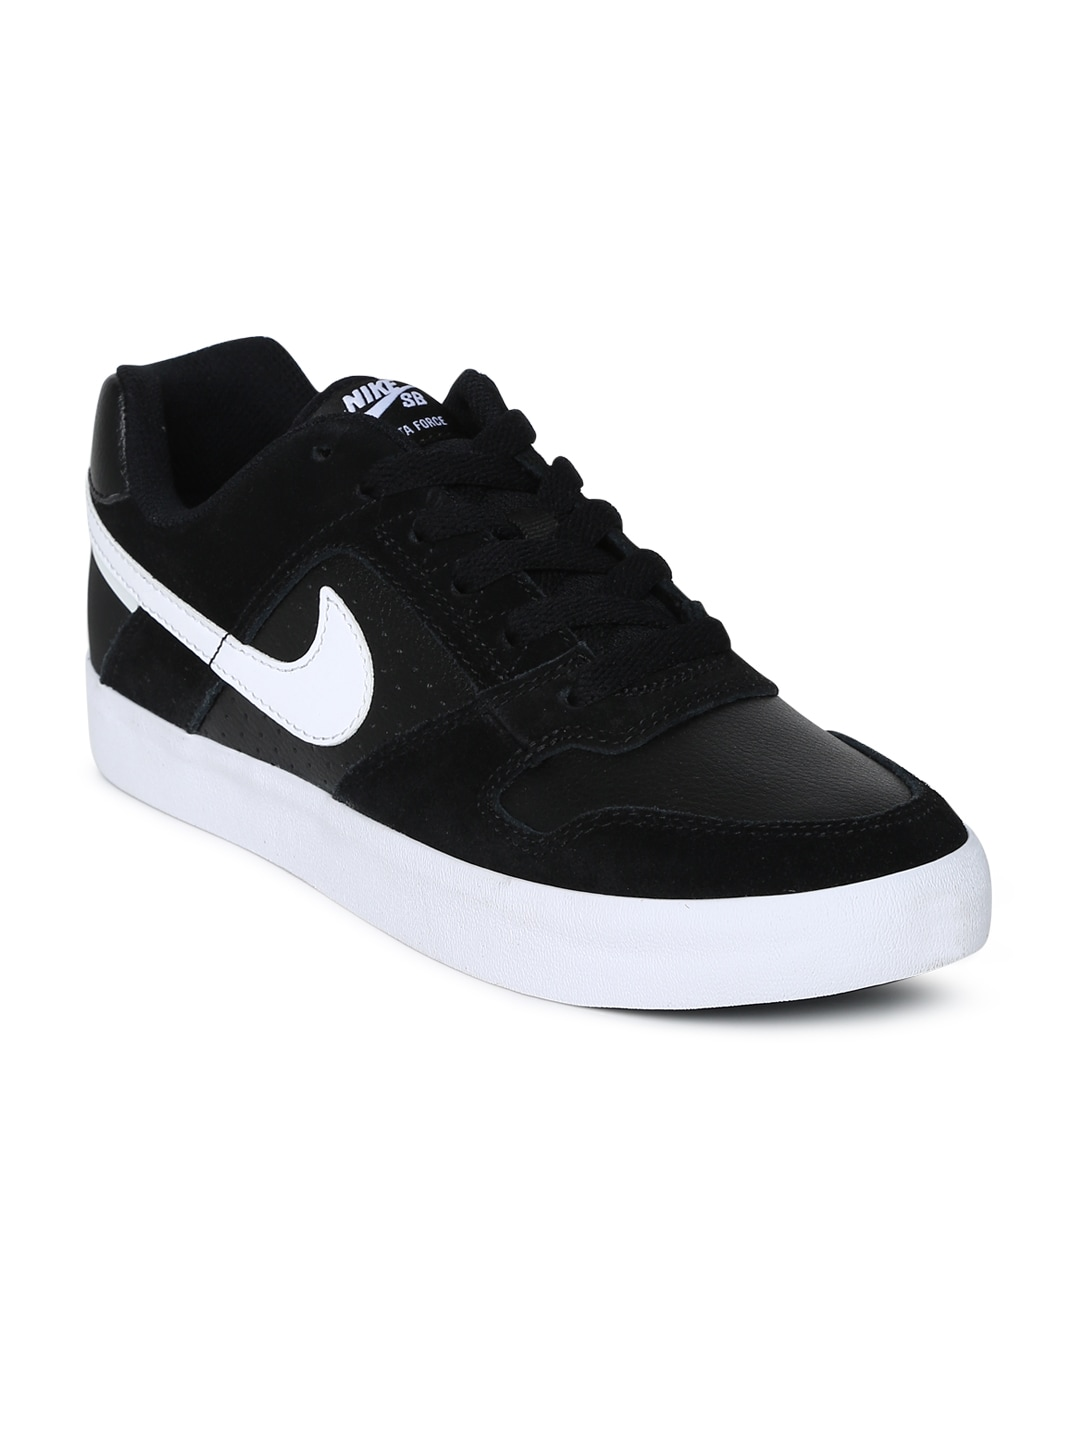 661f26322ba Nike Sb Shoes - Buy Nike Sb Shoes online in India